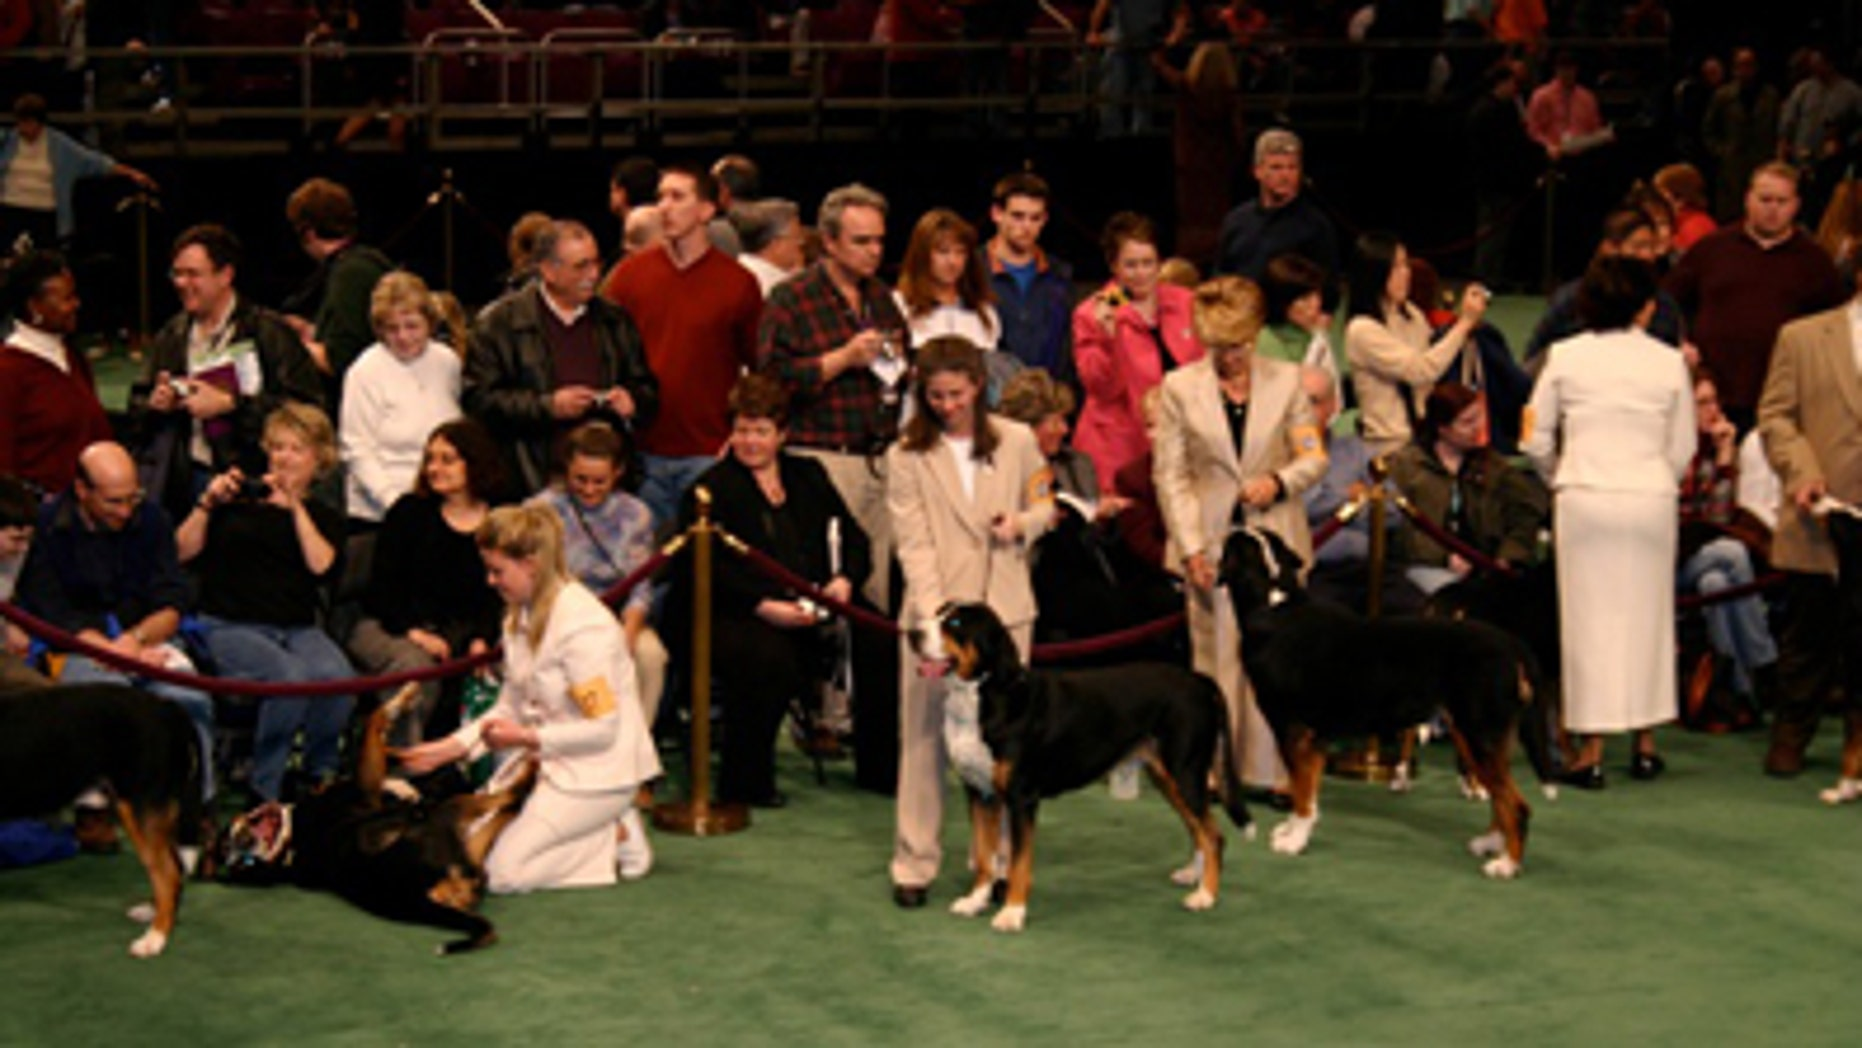 Feb. 14, 2005: The author and her Greater Swiss Mountain Dog at the Westminster Kennel Club Dog Show in New York City.